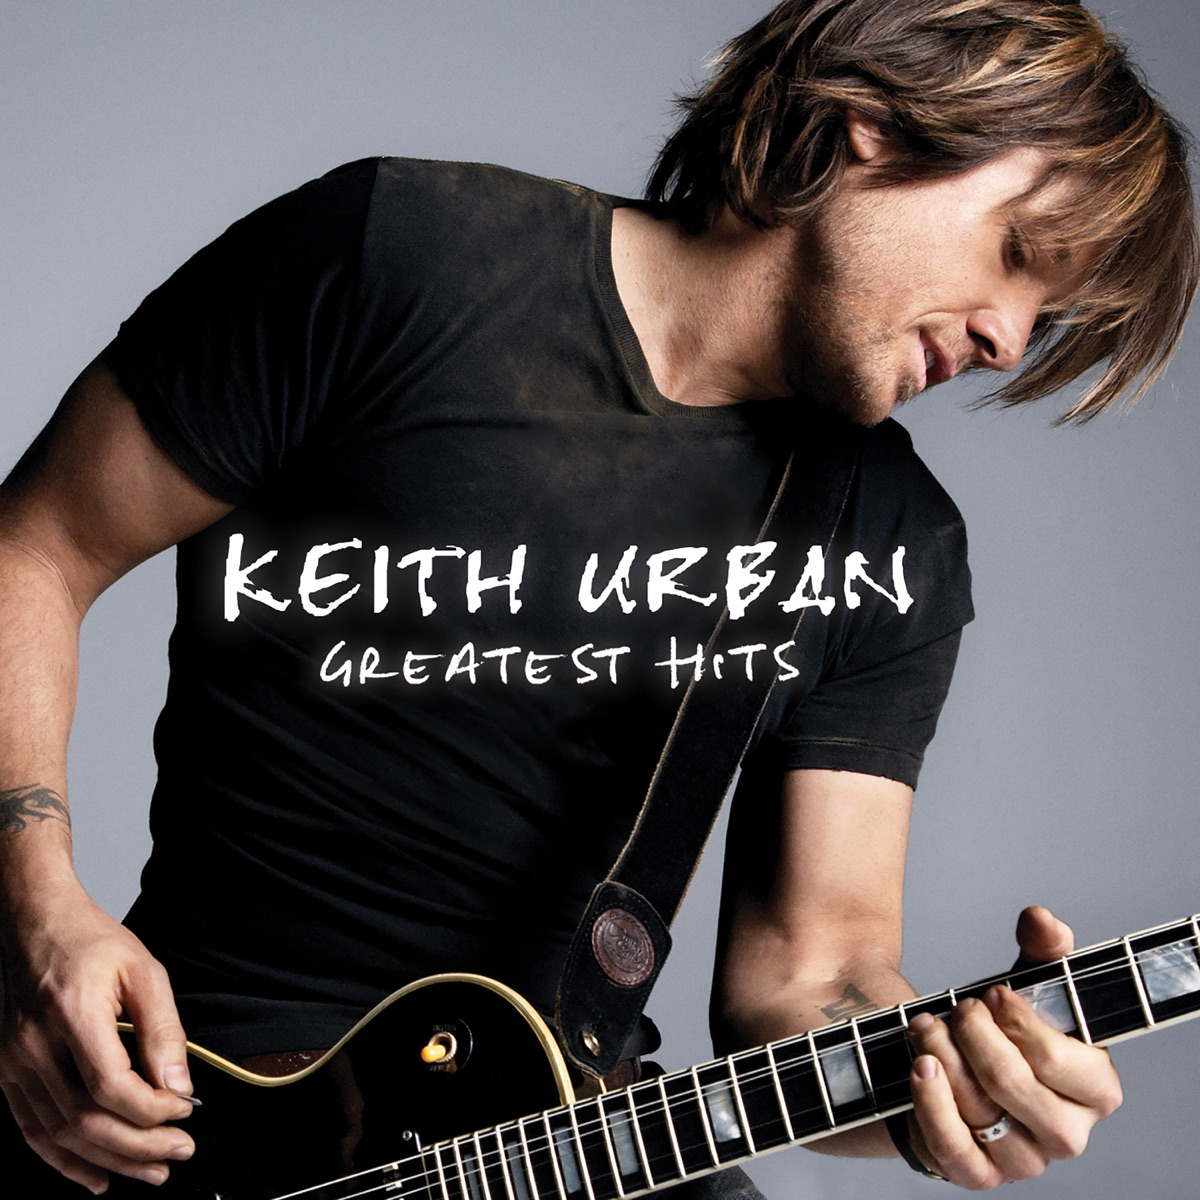 Greatest Hits Keith Urban CD cover